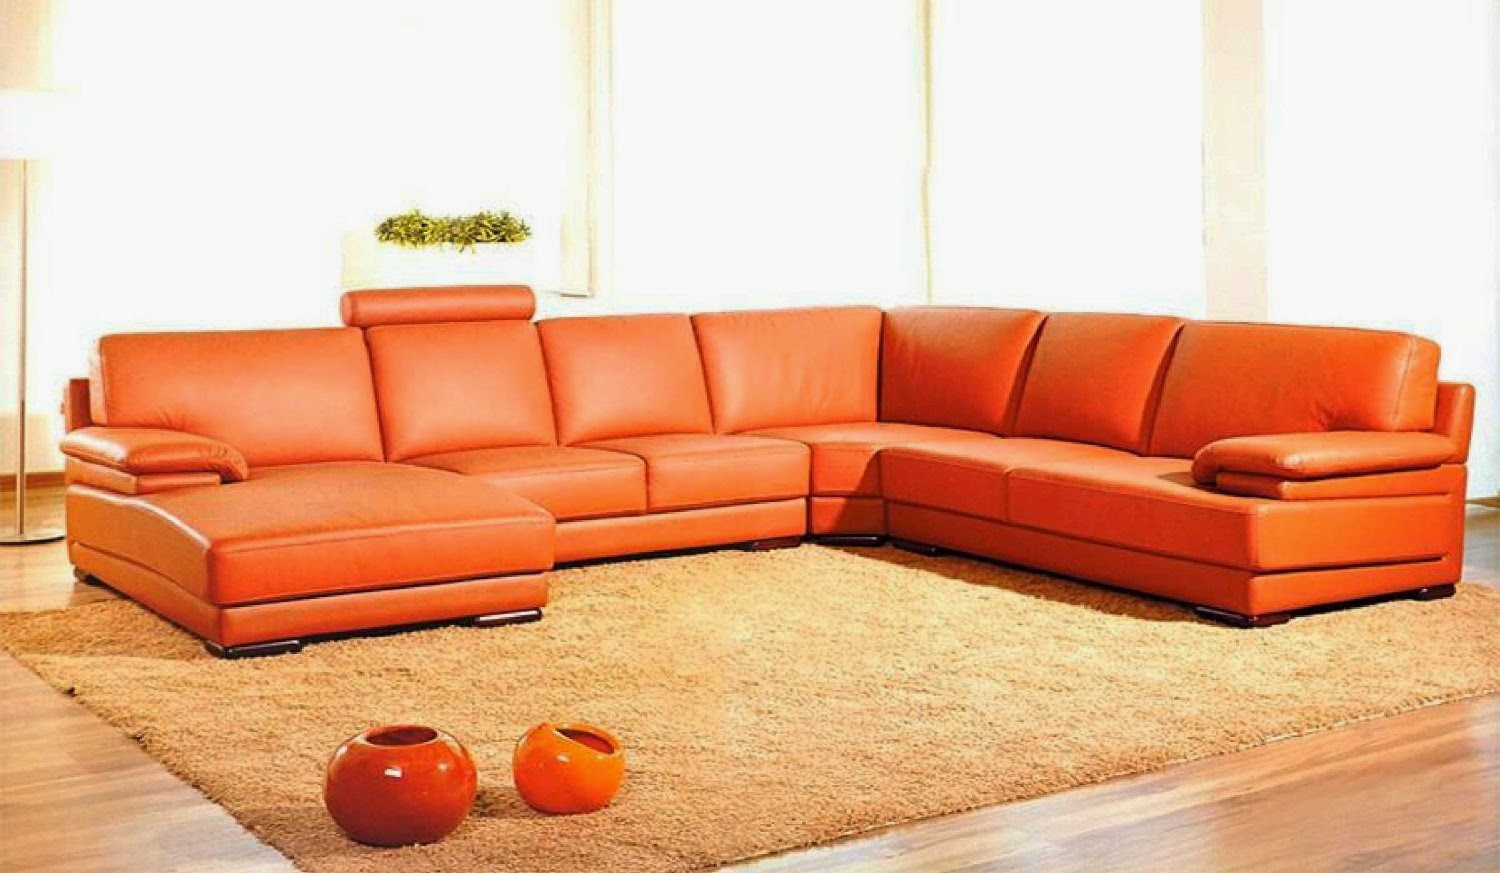 orange couch orange sectional couch. Black Bedroom Furniture Sets. Home Design Ideas